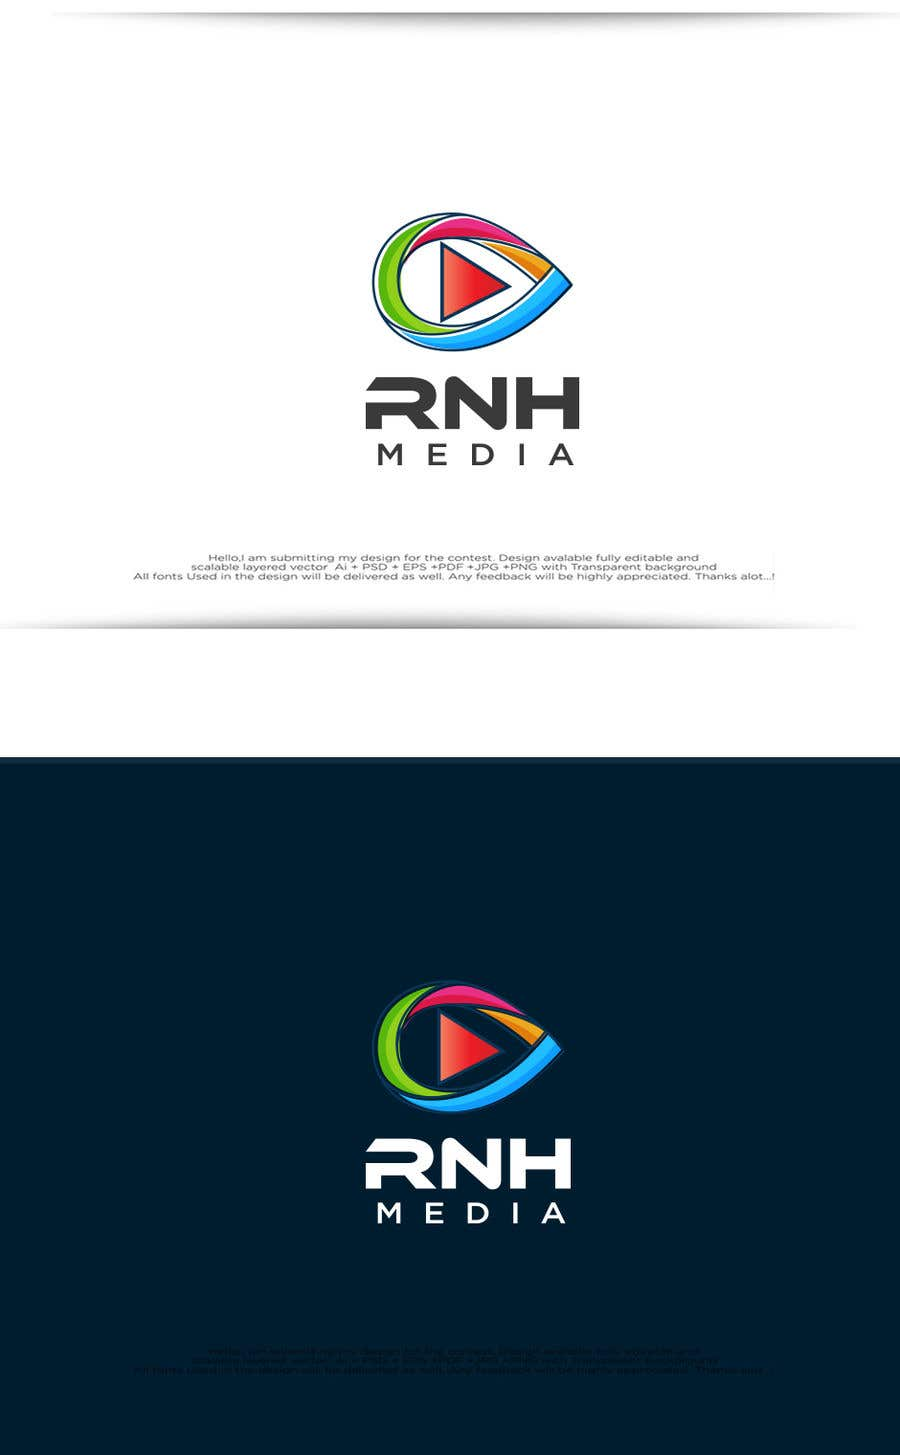 Proposition n°104 du concours Create a logo for a new media agency